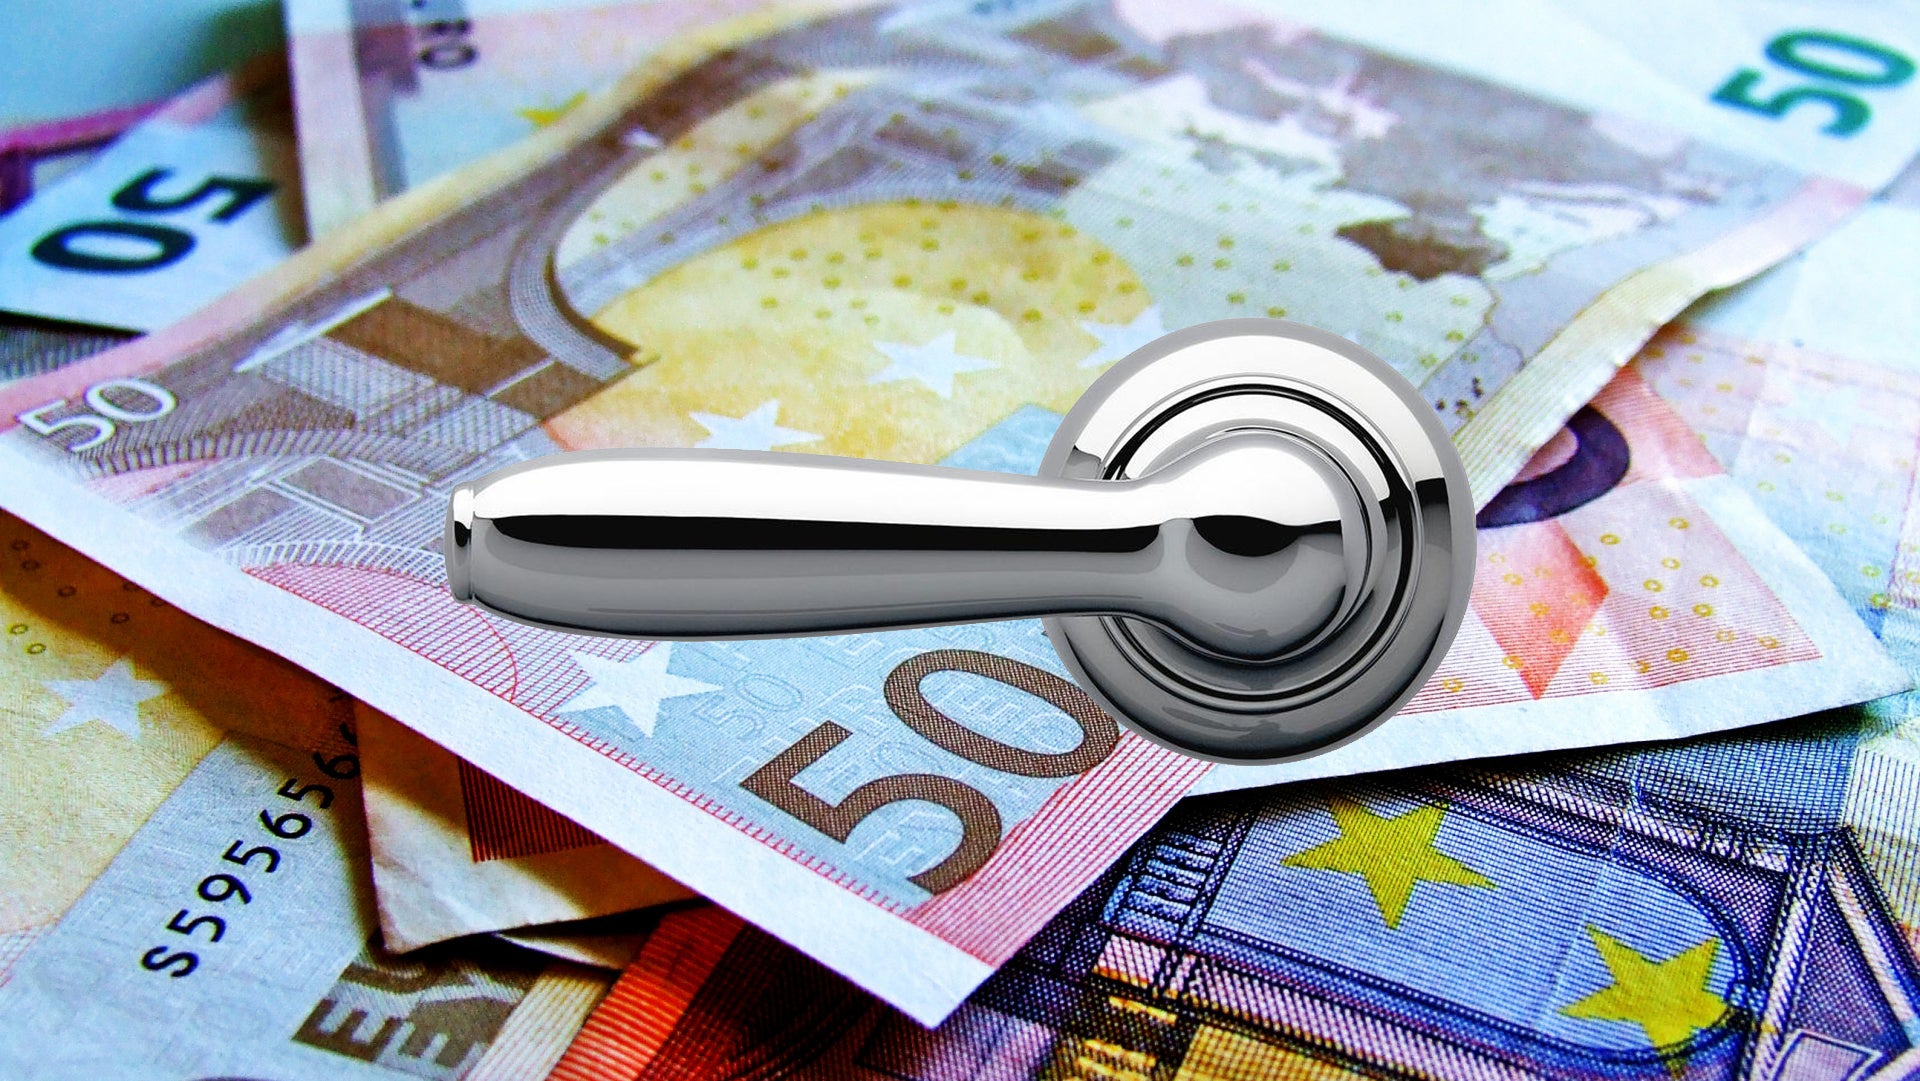 Why Is Someone Clogging Swiss Toilets With Tens Of Thousands Of Euros In Cash?